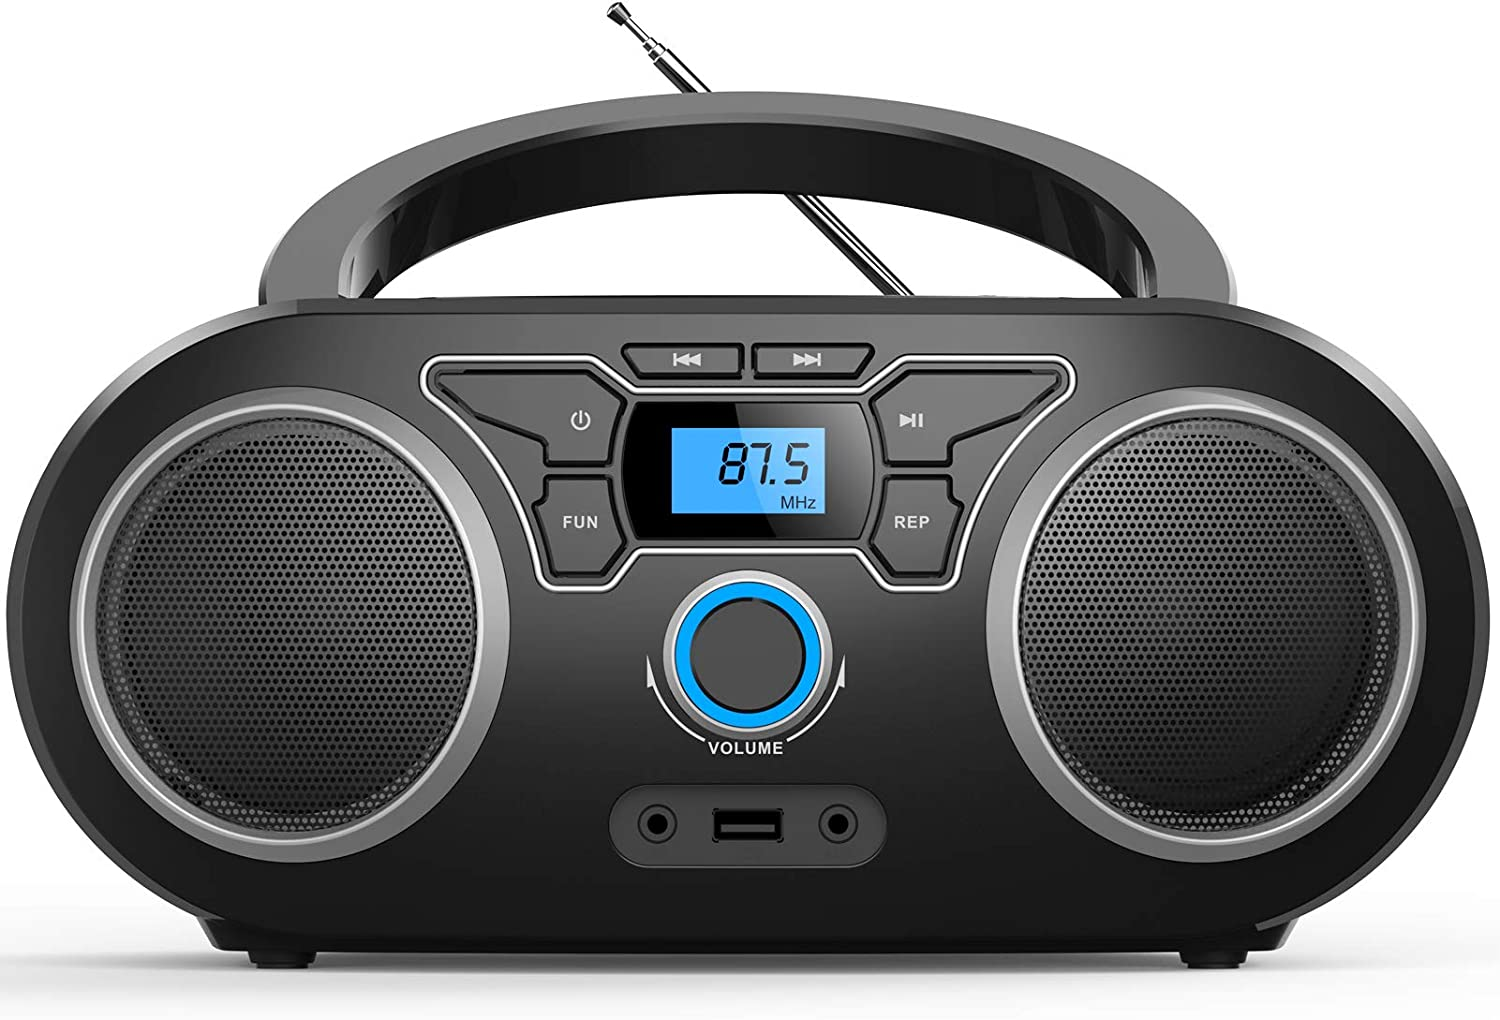 Portable CD Player Boombox with Bluetooth & FM Radio, USB MP3 Playback,3.5mm AUX Headphone Jack and USB Input, Compact CD Player Radio Stereo System(WTB771)